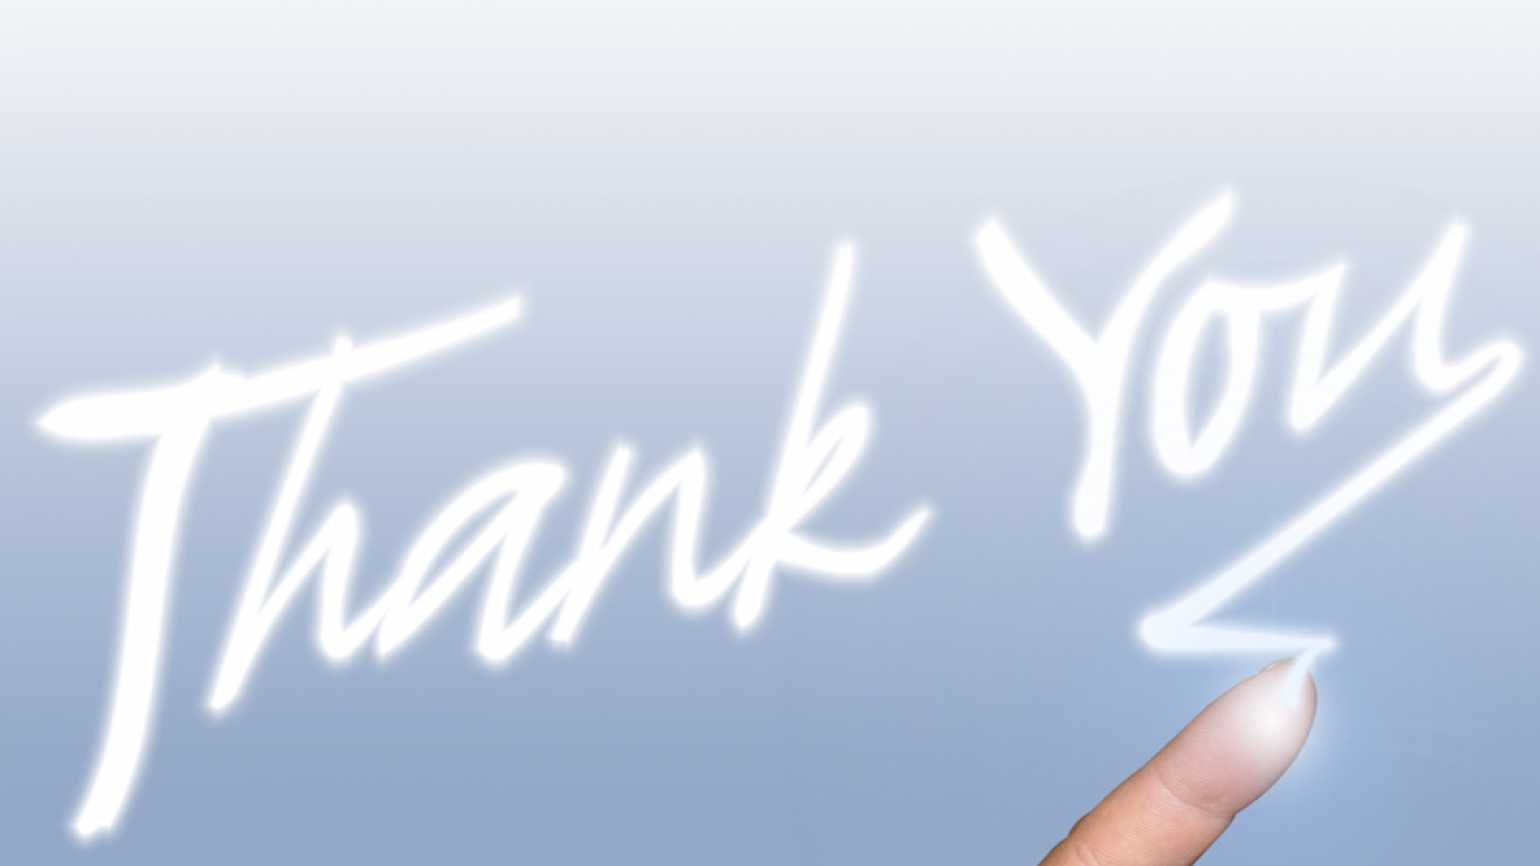 """""""Thank you"""" image from freeimages.com"""